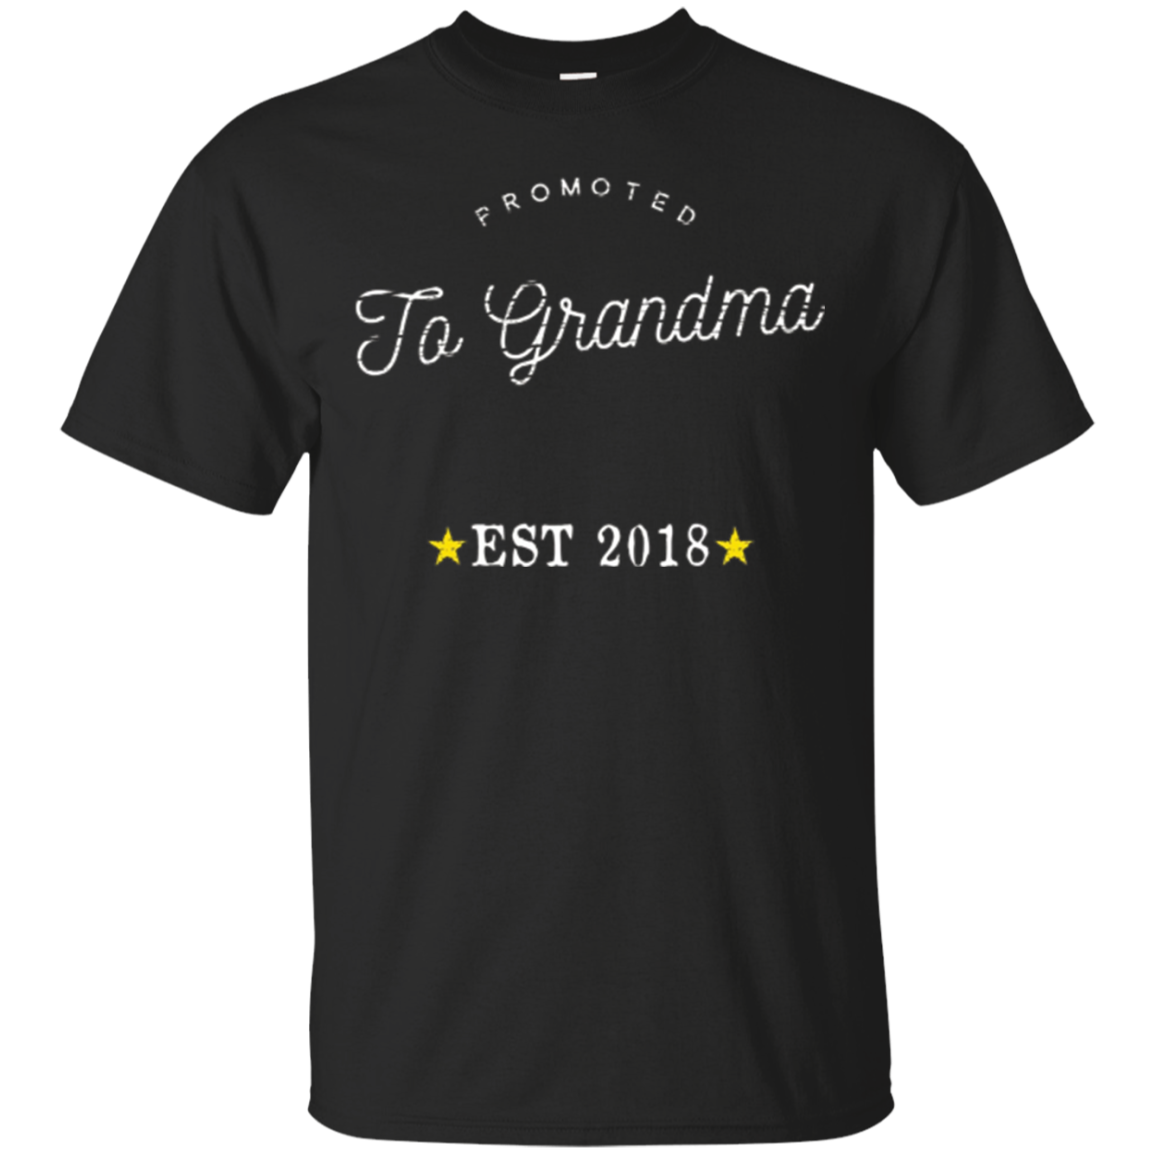 Promoted to Grandma TShirt New Grandmother To Be Expecting